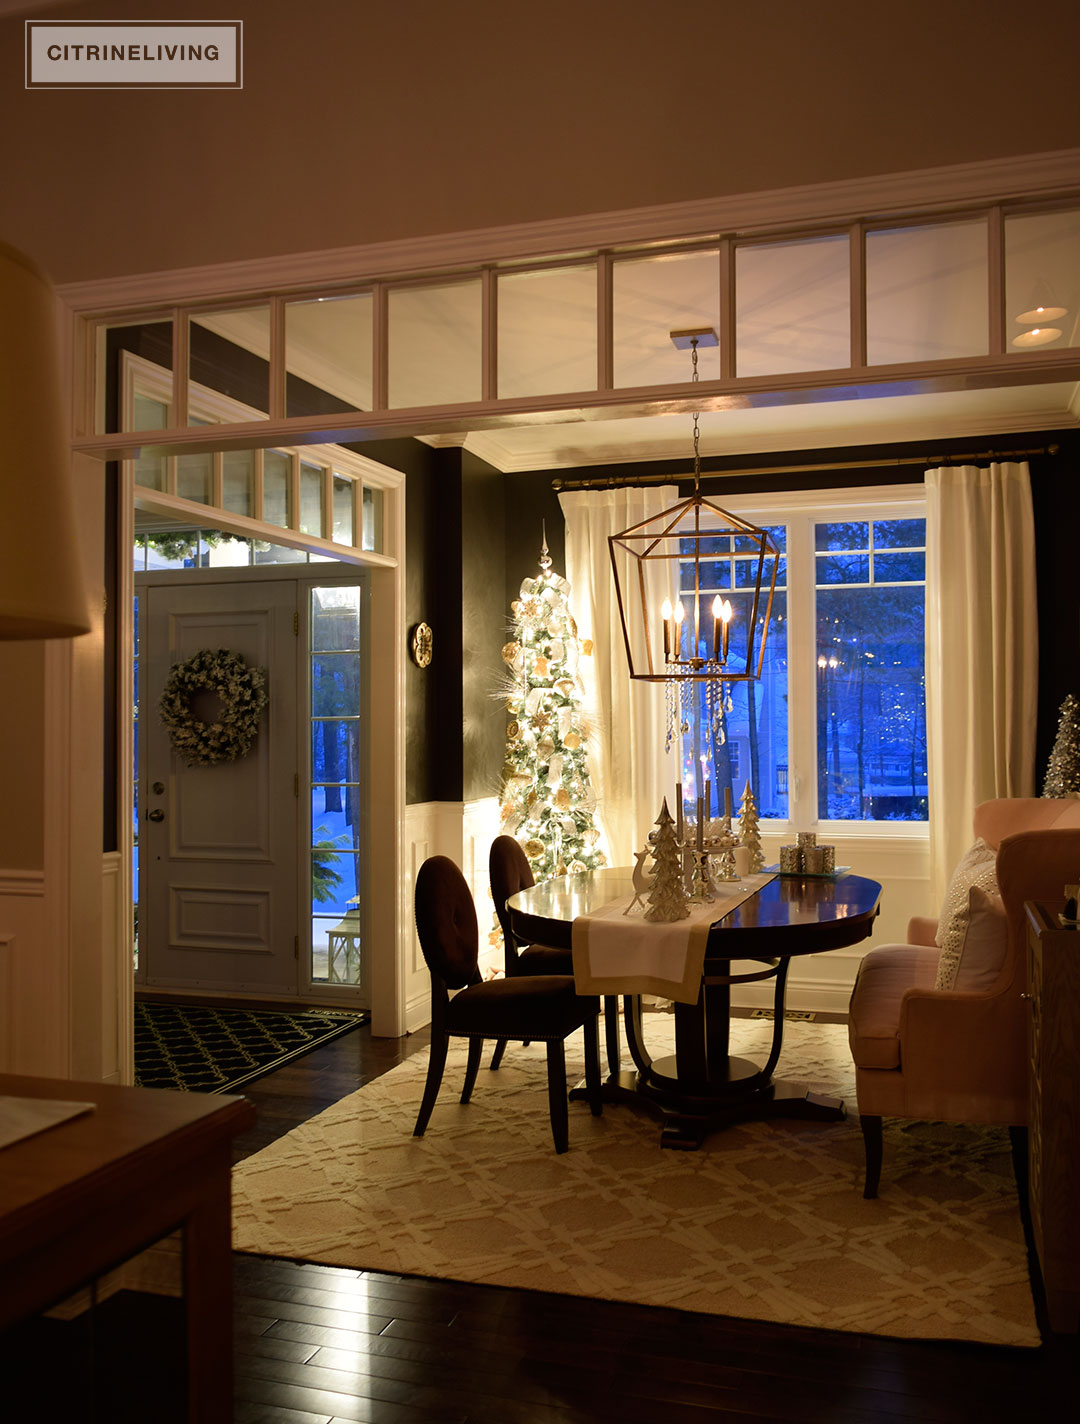 dining-room-christmas-tree-nighttime